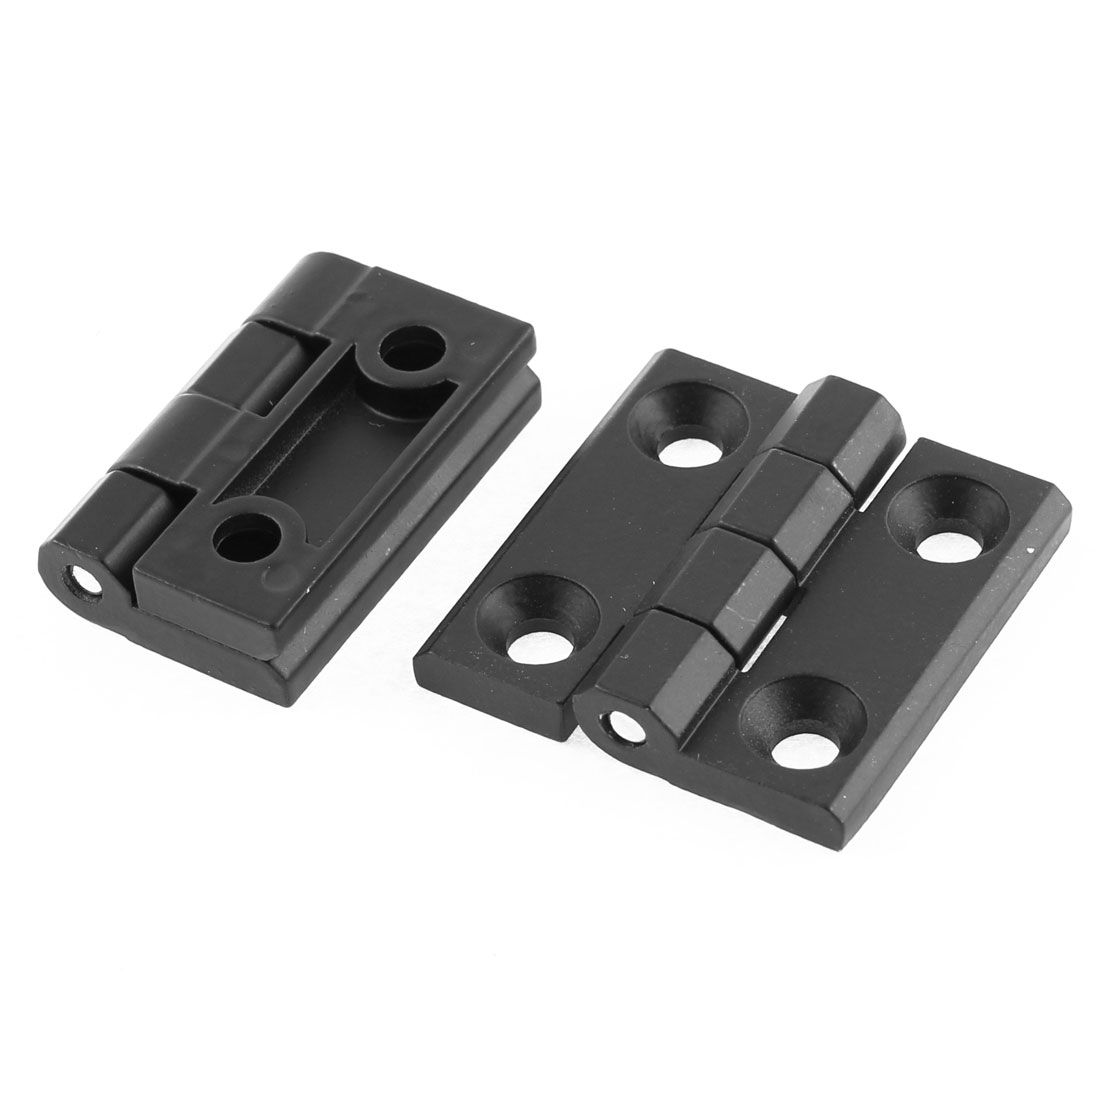 40mm x 40mm Zinc Alloy Closet Cabinet Door Butt Hinge Black 2Pcs